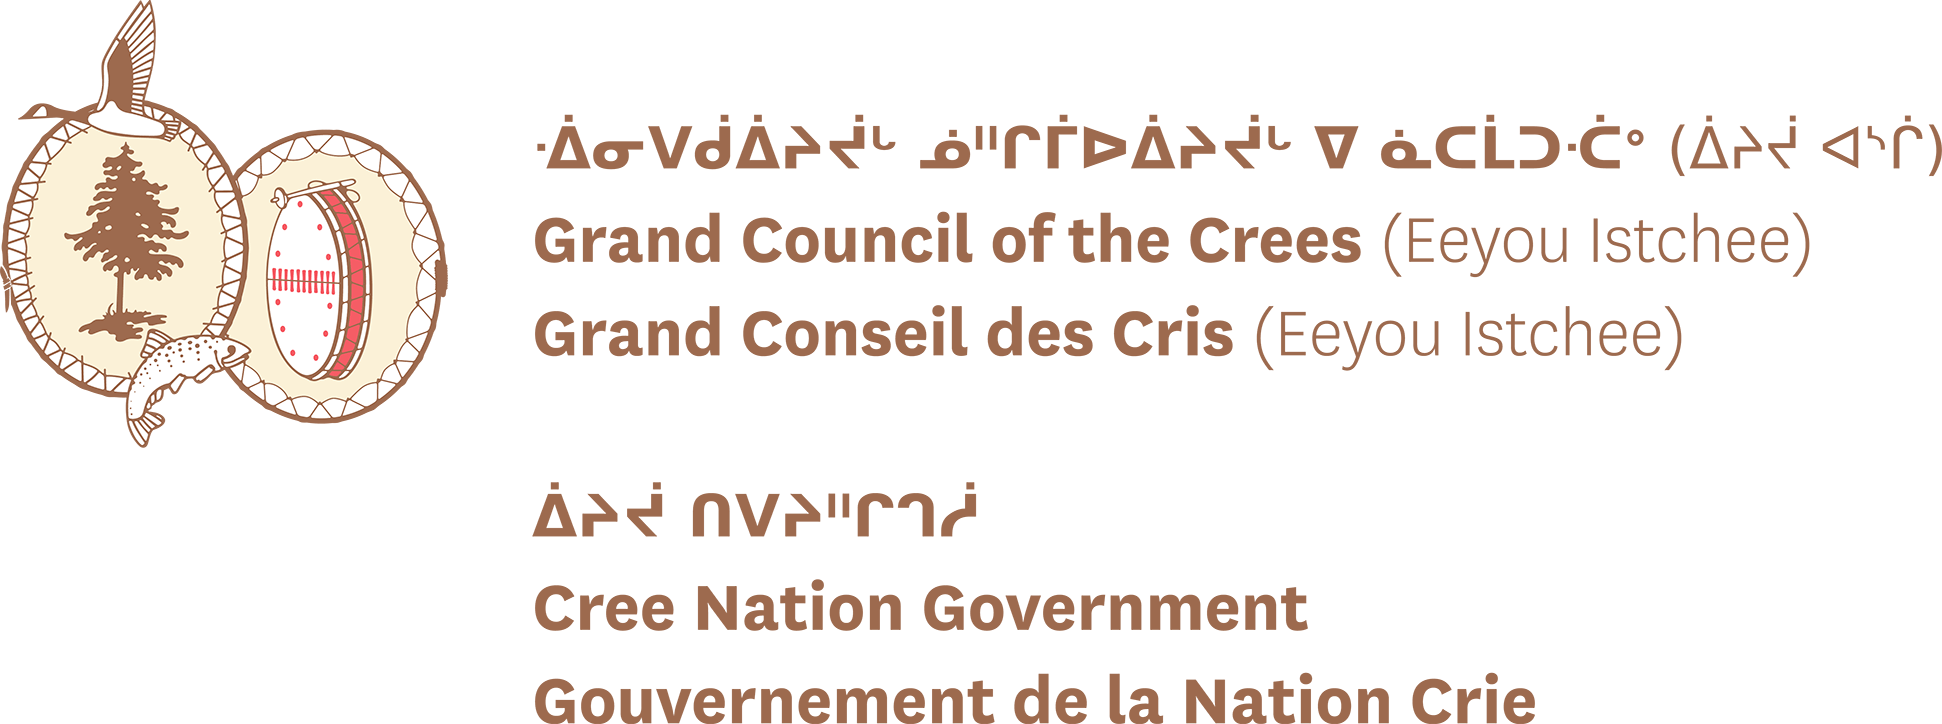 Grand Council of the Crees logo